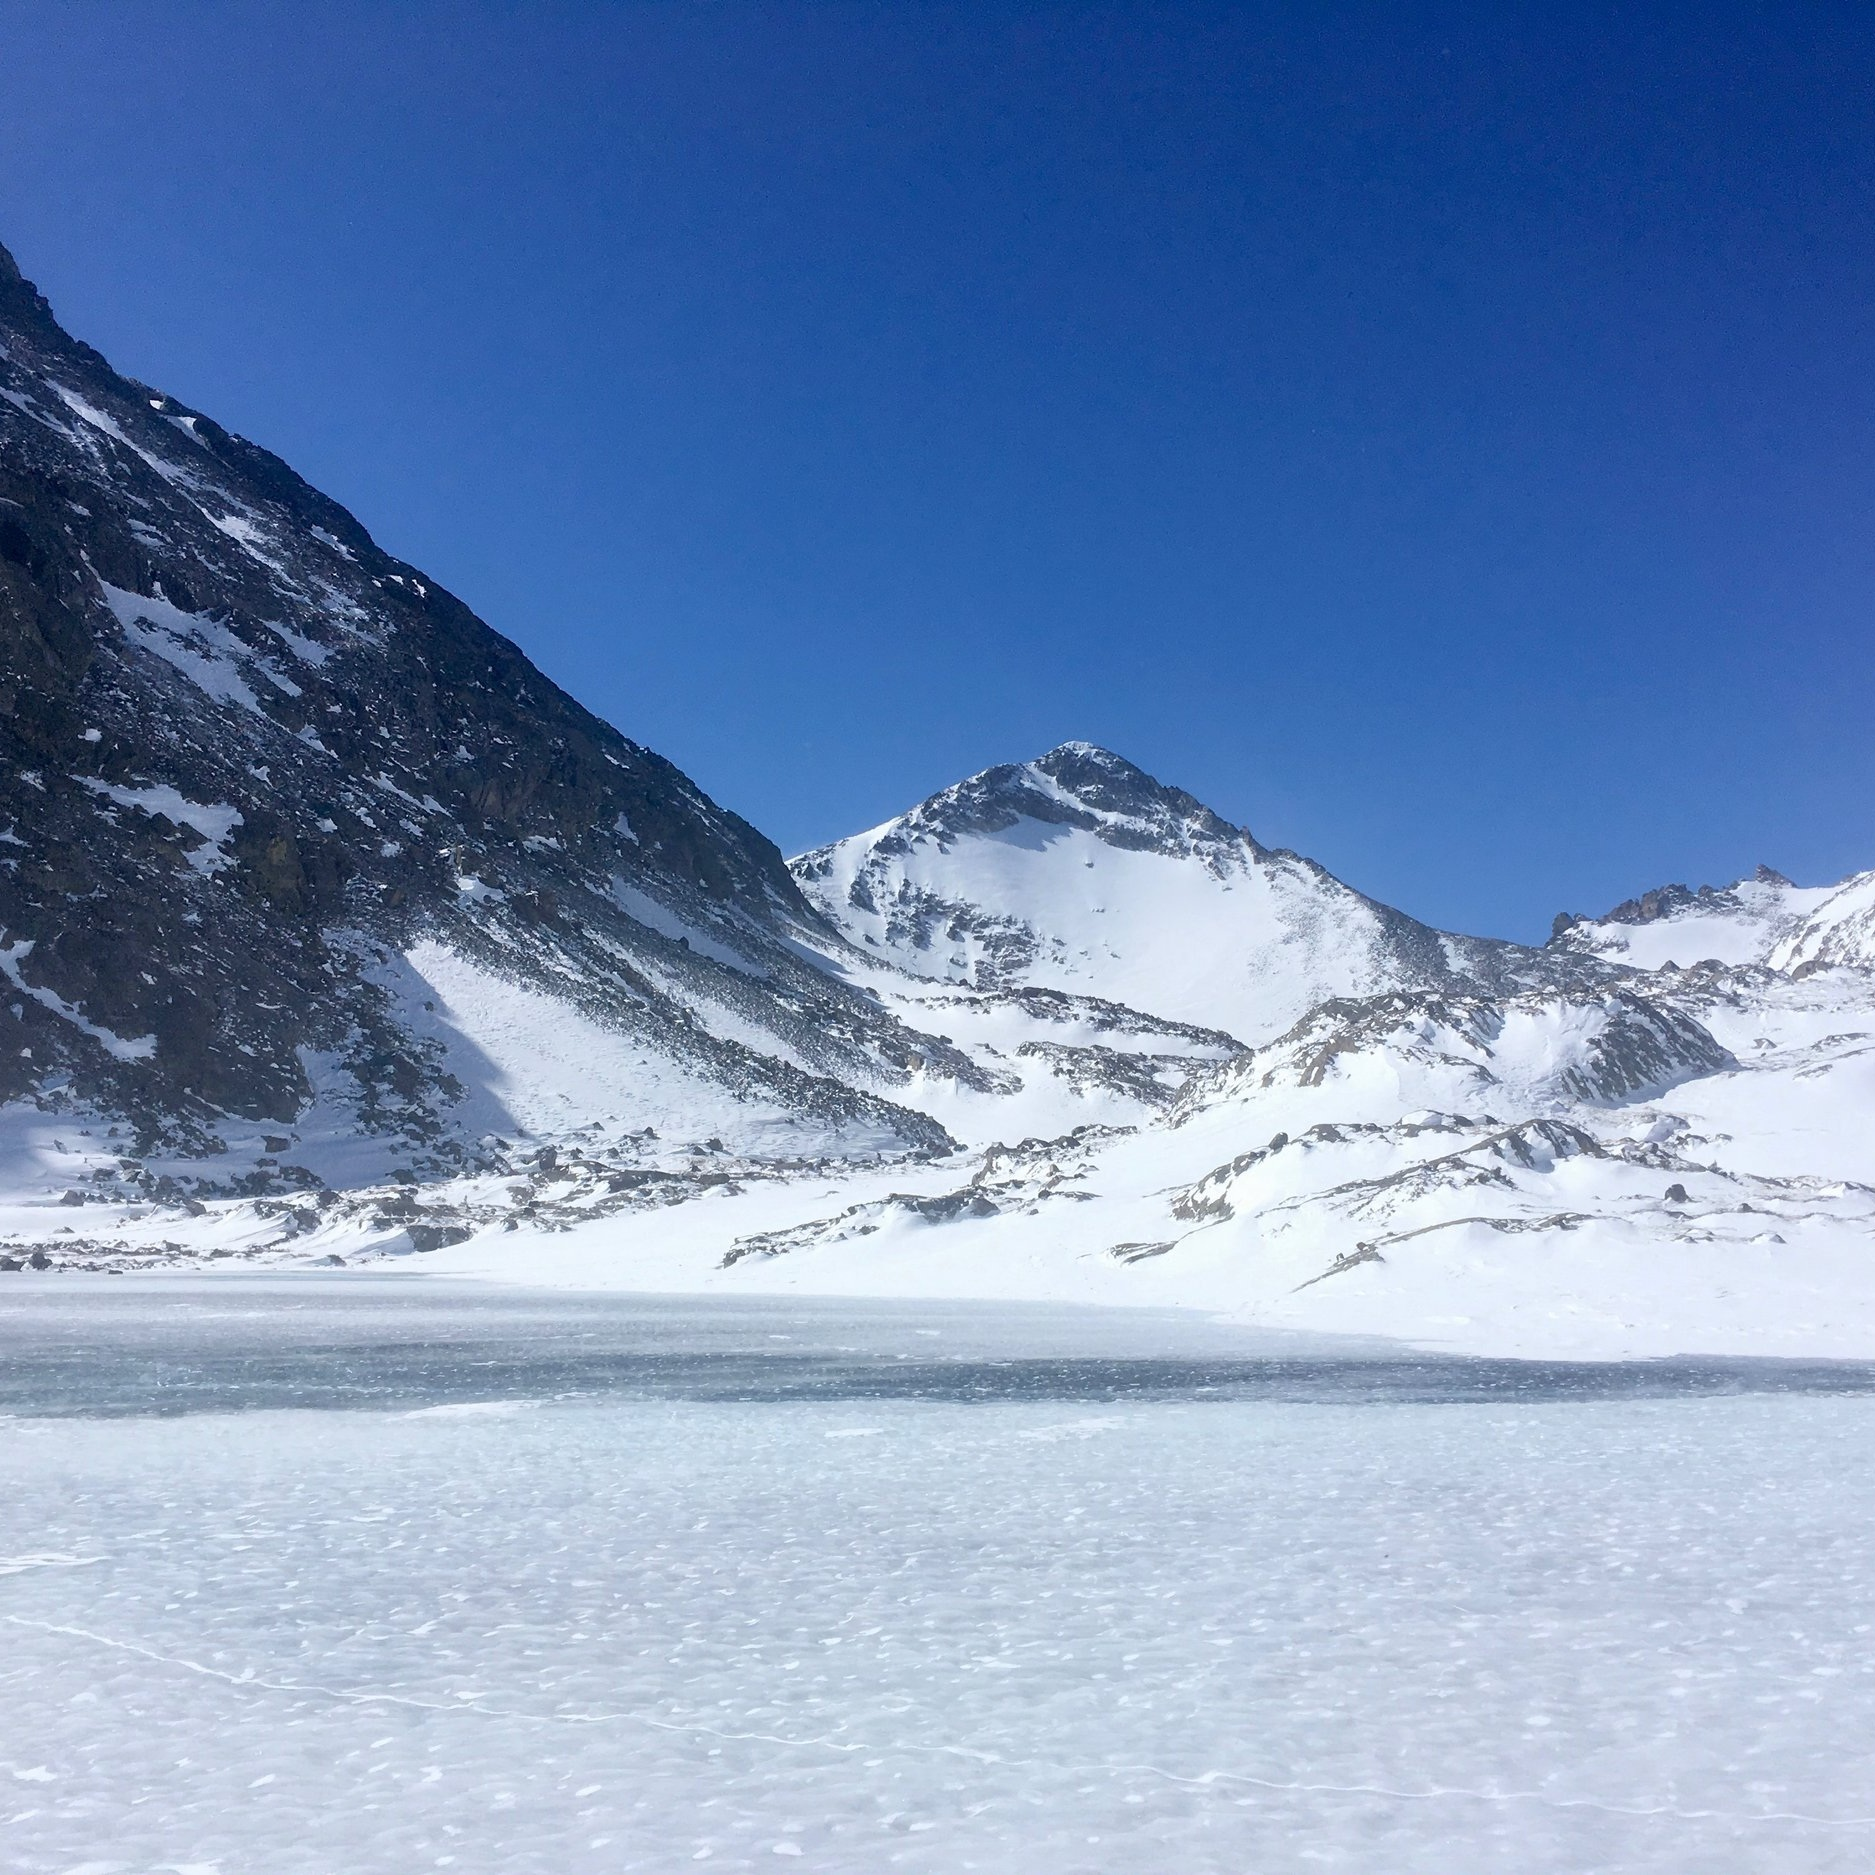 Canary in the coal mine - For more that 35 years we have tracked changes in the 20-acre Arikaree Glacier and in a chain of high-elevation lakes throughout the Green Lakes Valley. We find the the Arikaree Glacier has been thinning by about 1 meter per year for the last 15 years, and that it could disappear in 20 years if current climate trends continue. Our lakes are also staying frozen for shorter and shorter periods each year. Our temperature measures — since the 1950s — suggest that these changes way up near the Continental Divide may be some early warming signs associated with summer and fall warming.